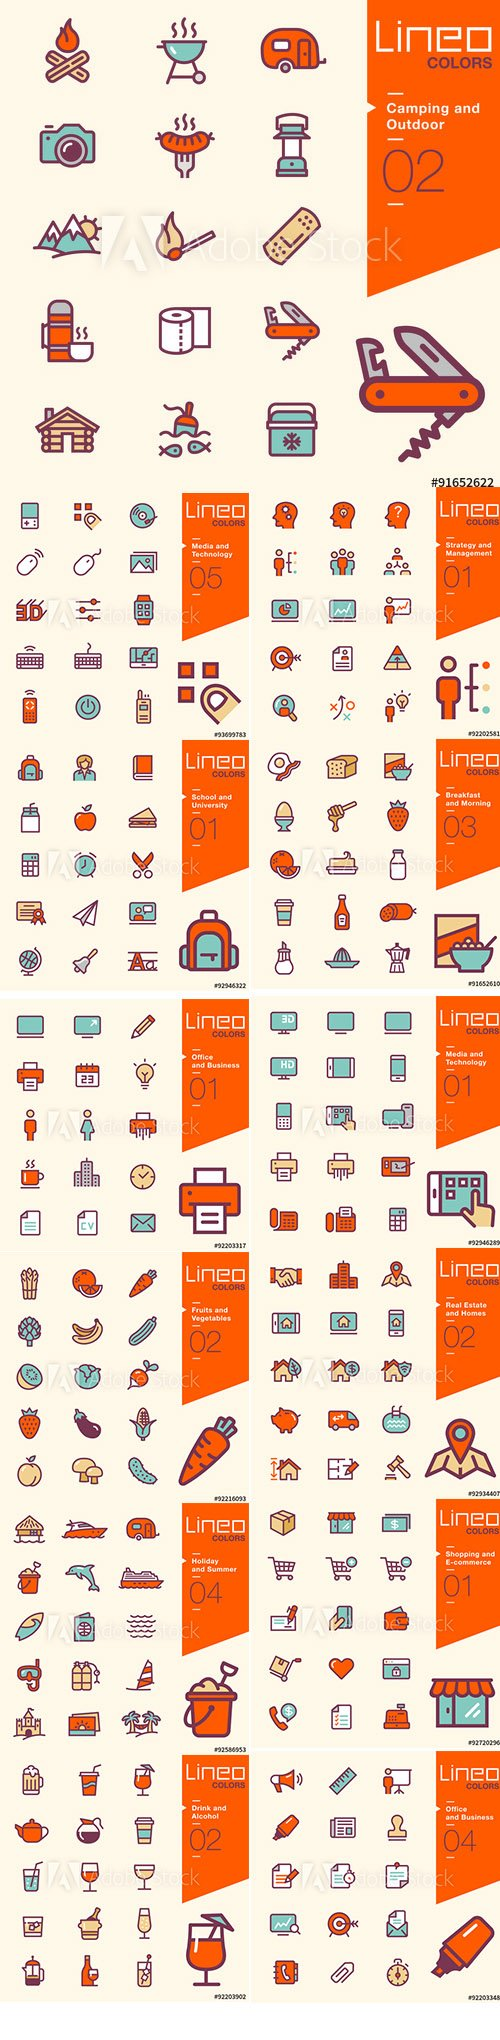 Lineo Colors Icons Pack Vol 2